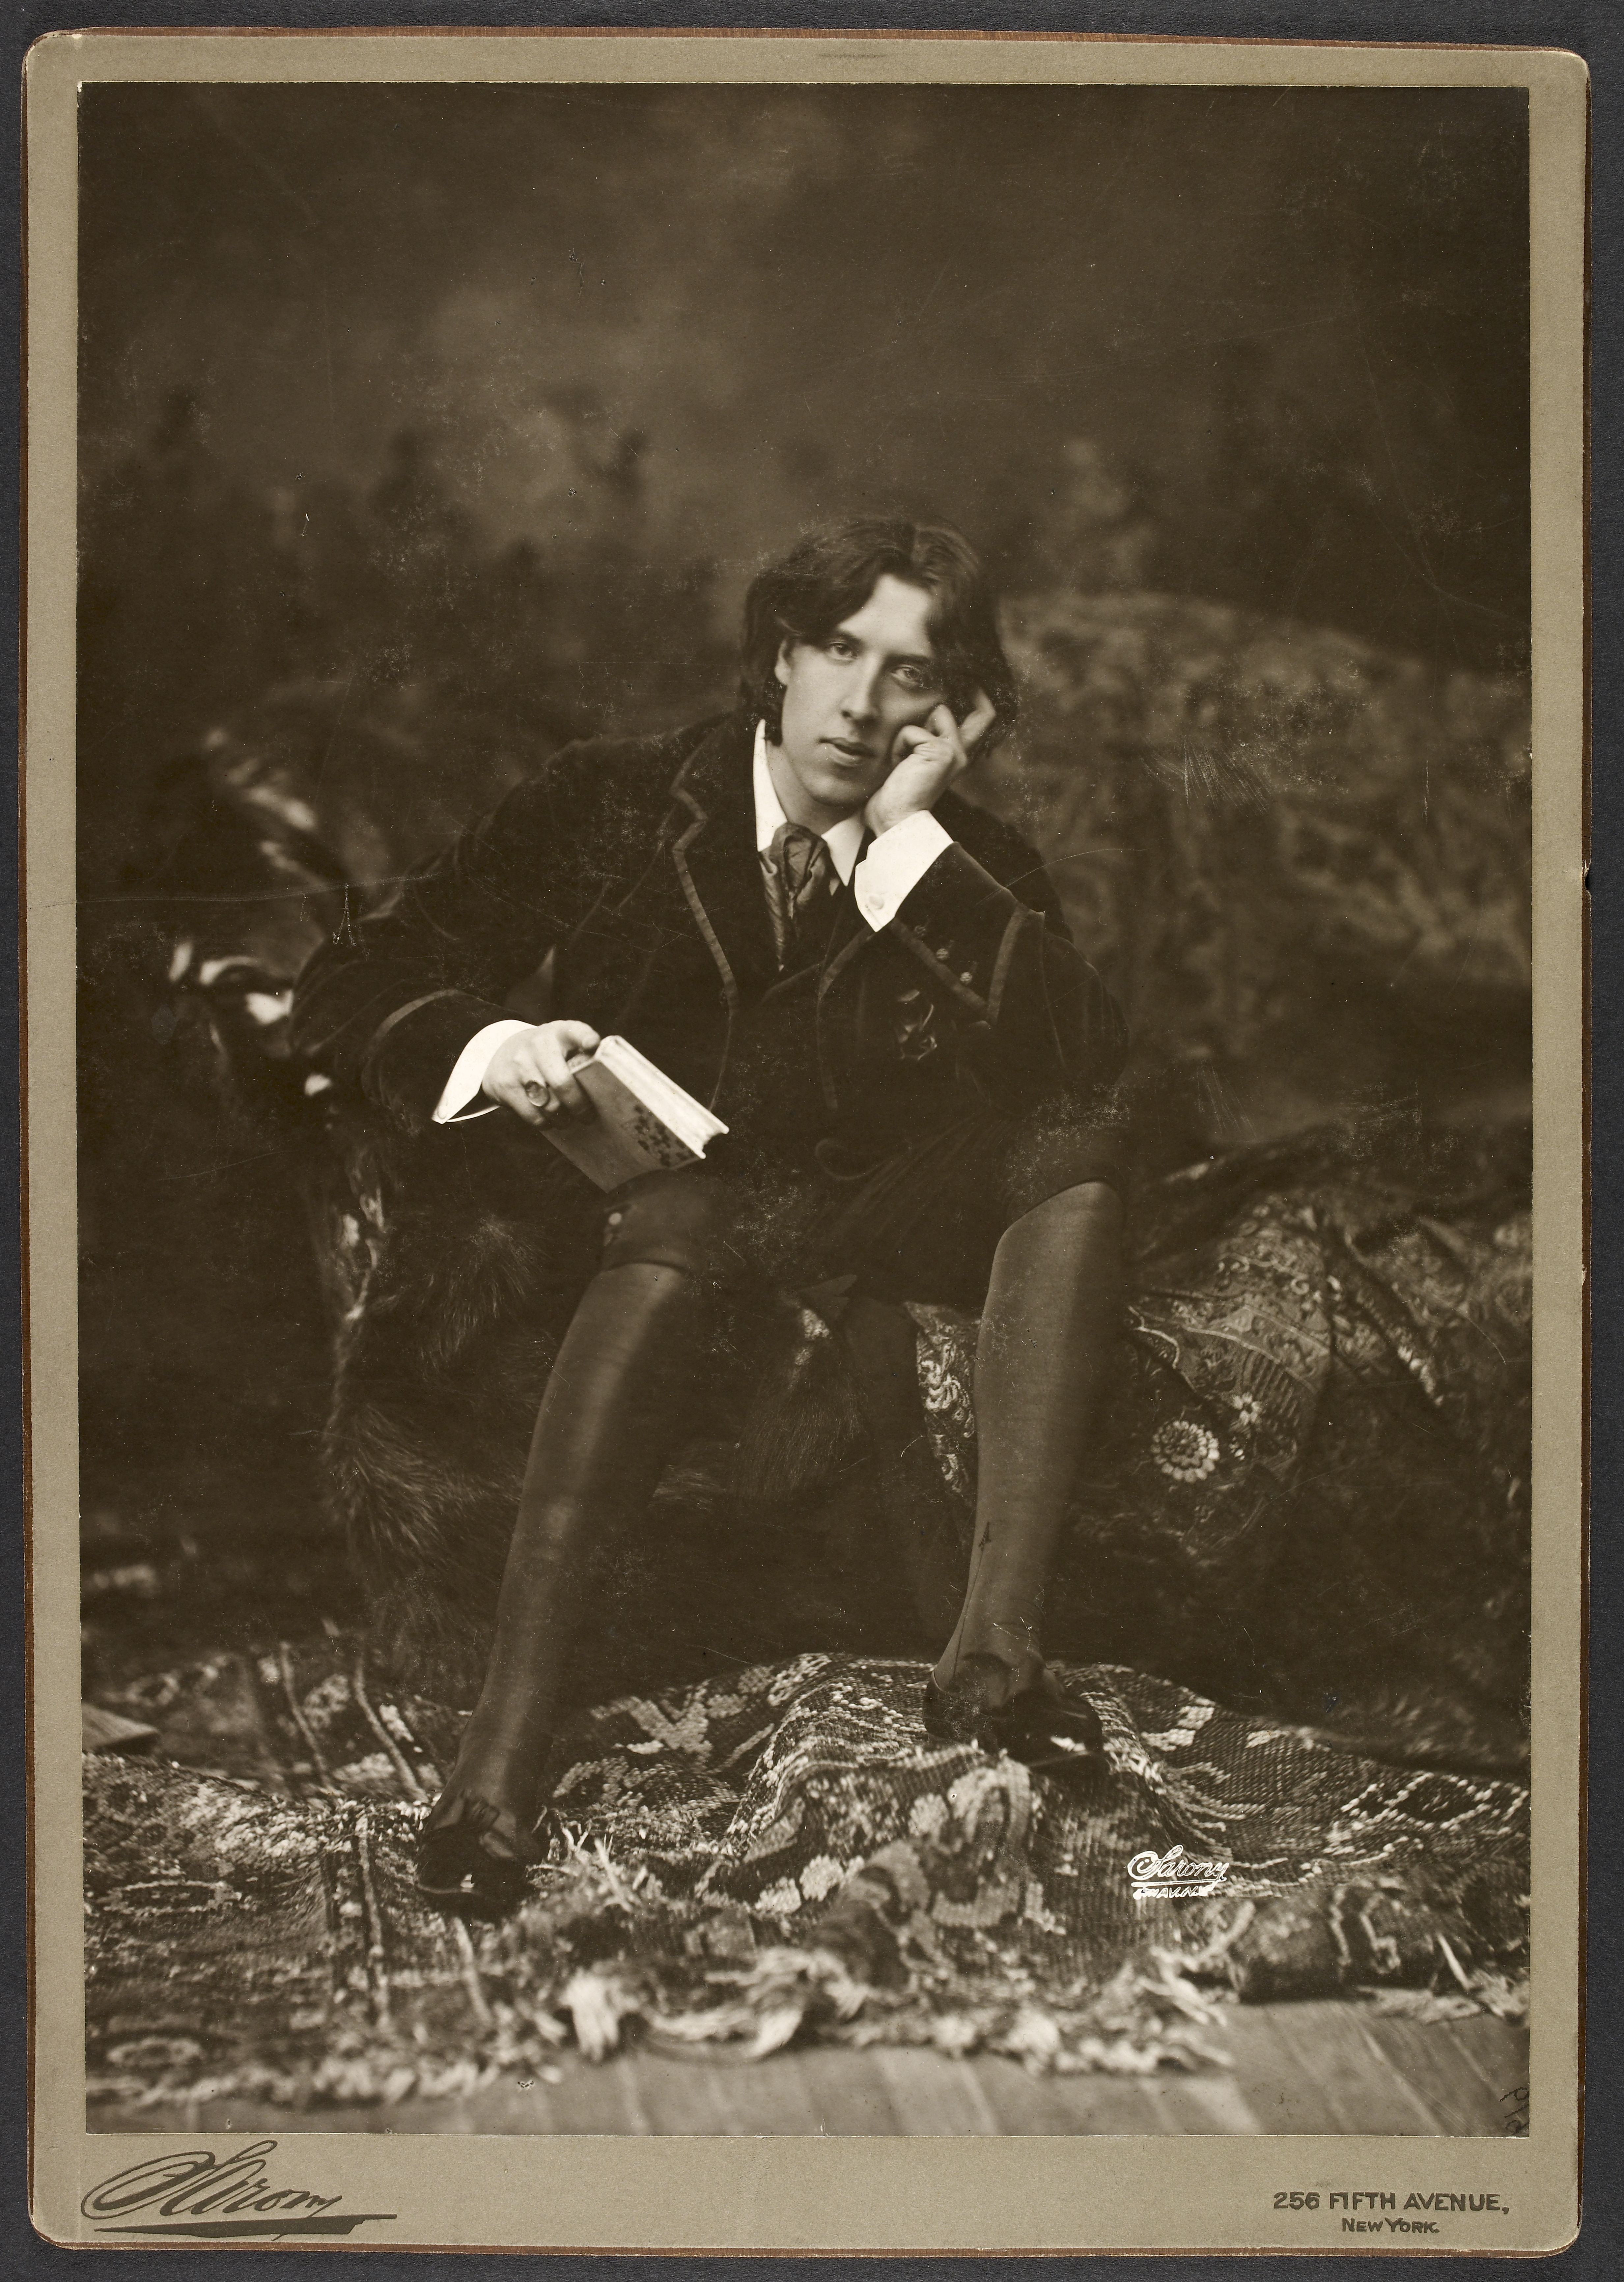 Add MS 81785 1. Portrait of Oscar Wilde by Napoleon Sarony, New York, 1882. © The British Library Board.